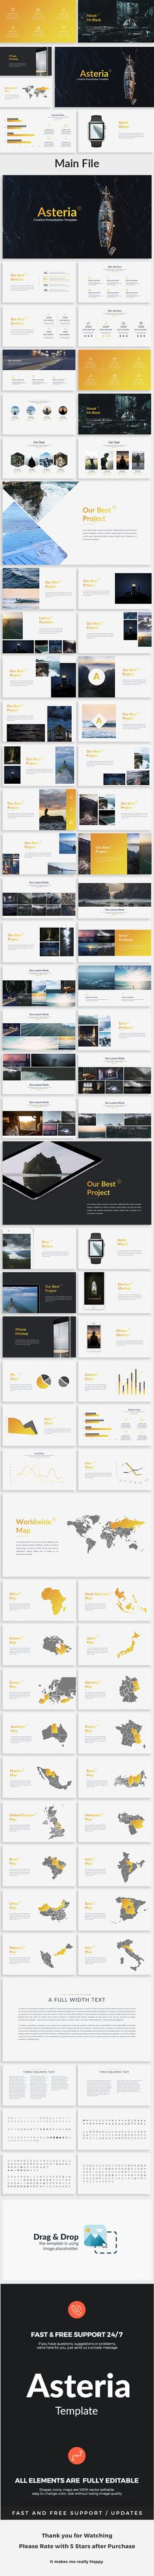 Asteria Creative Powerpoint Template — Powerpoint PPT #powerpoint #data charts • Download ➝ https://graphicriver.net/item/asteria-creative-powerpoint-template/19171814?ref=pxcr